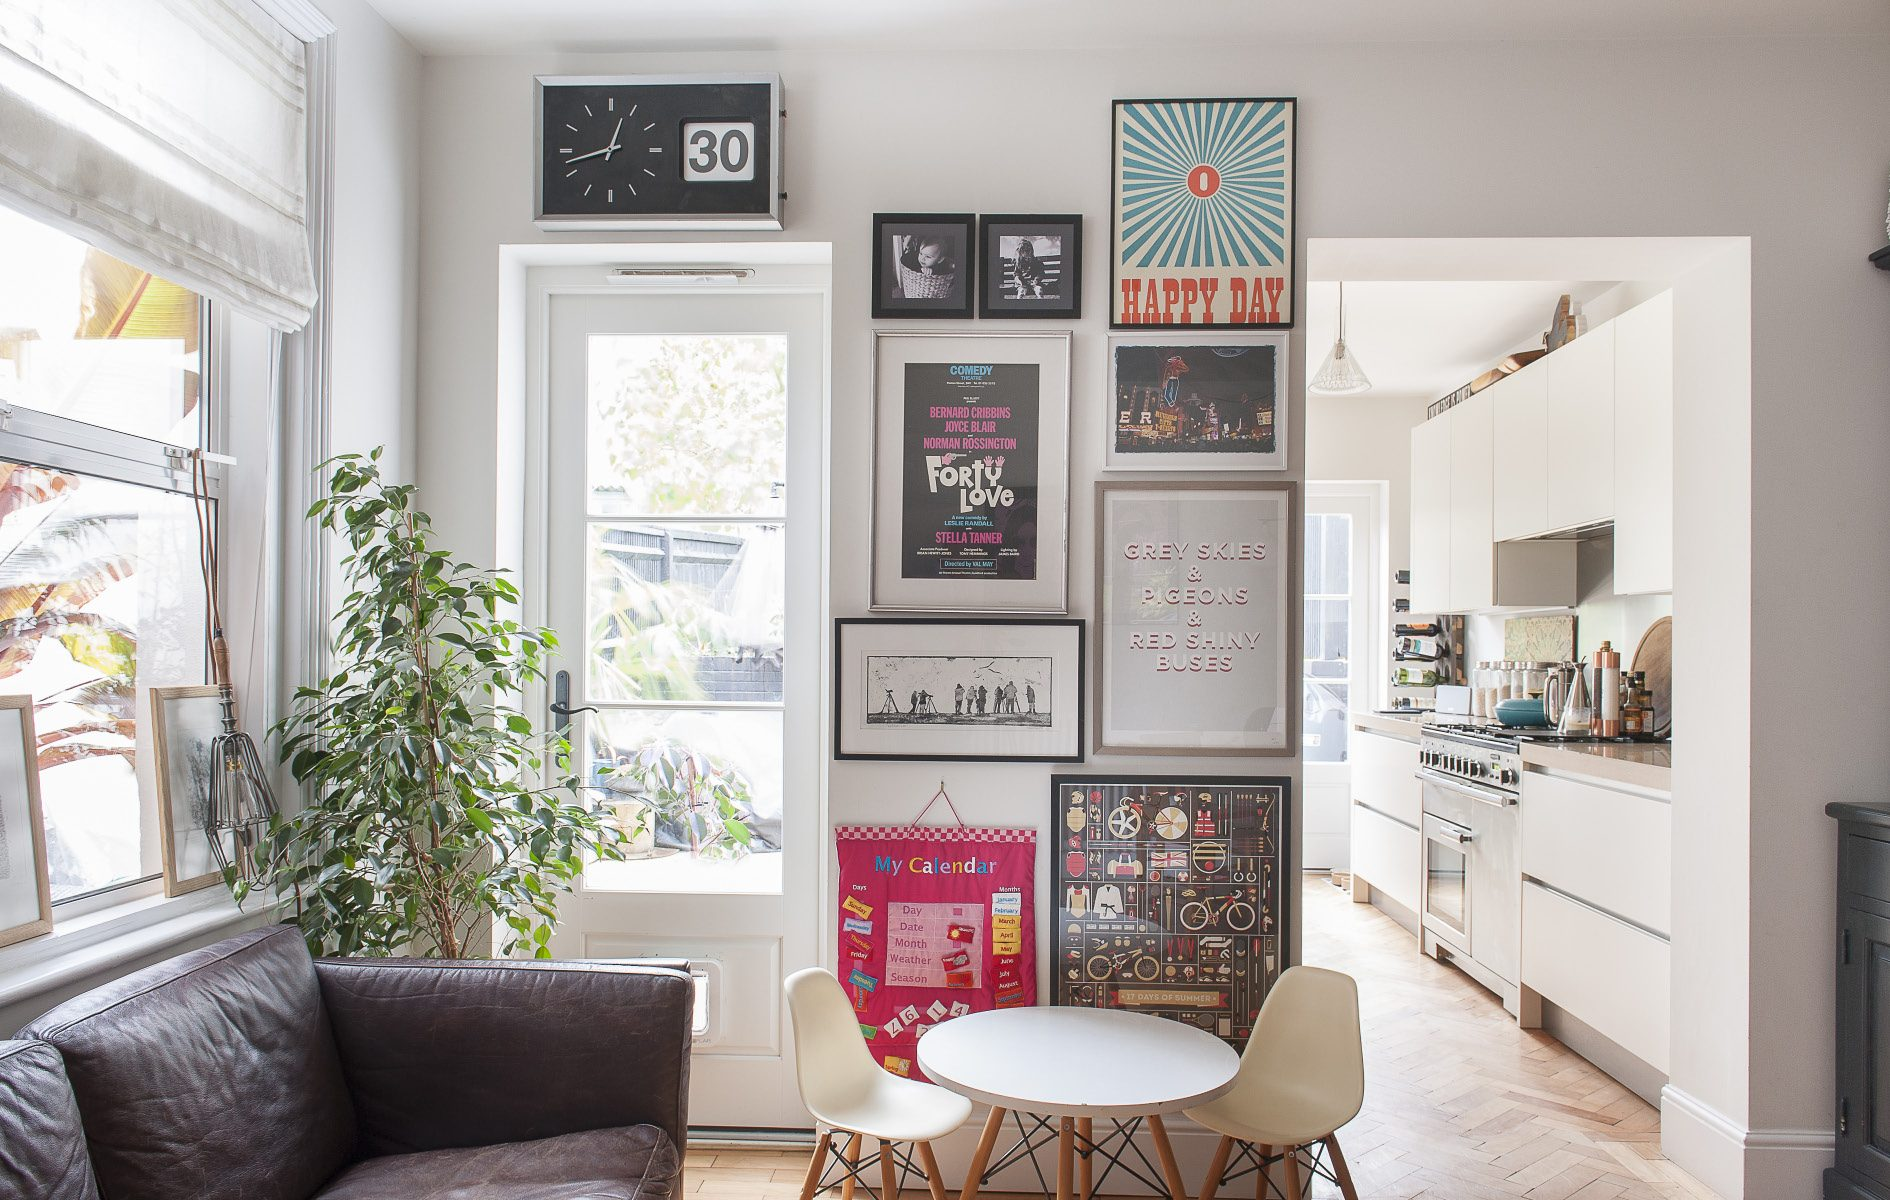 After spotting the potential of this Victorian house near Camden Road in Tunbridge Wells, Justine Hodgson-Barker, an interior designer, and her husband James set about transforming it into a stylish yet functional family home